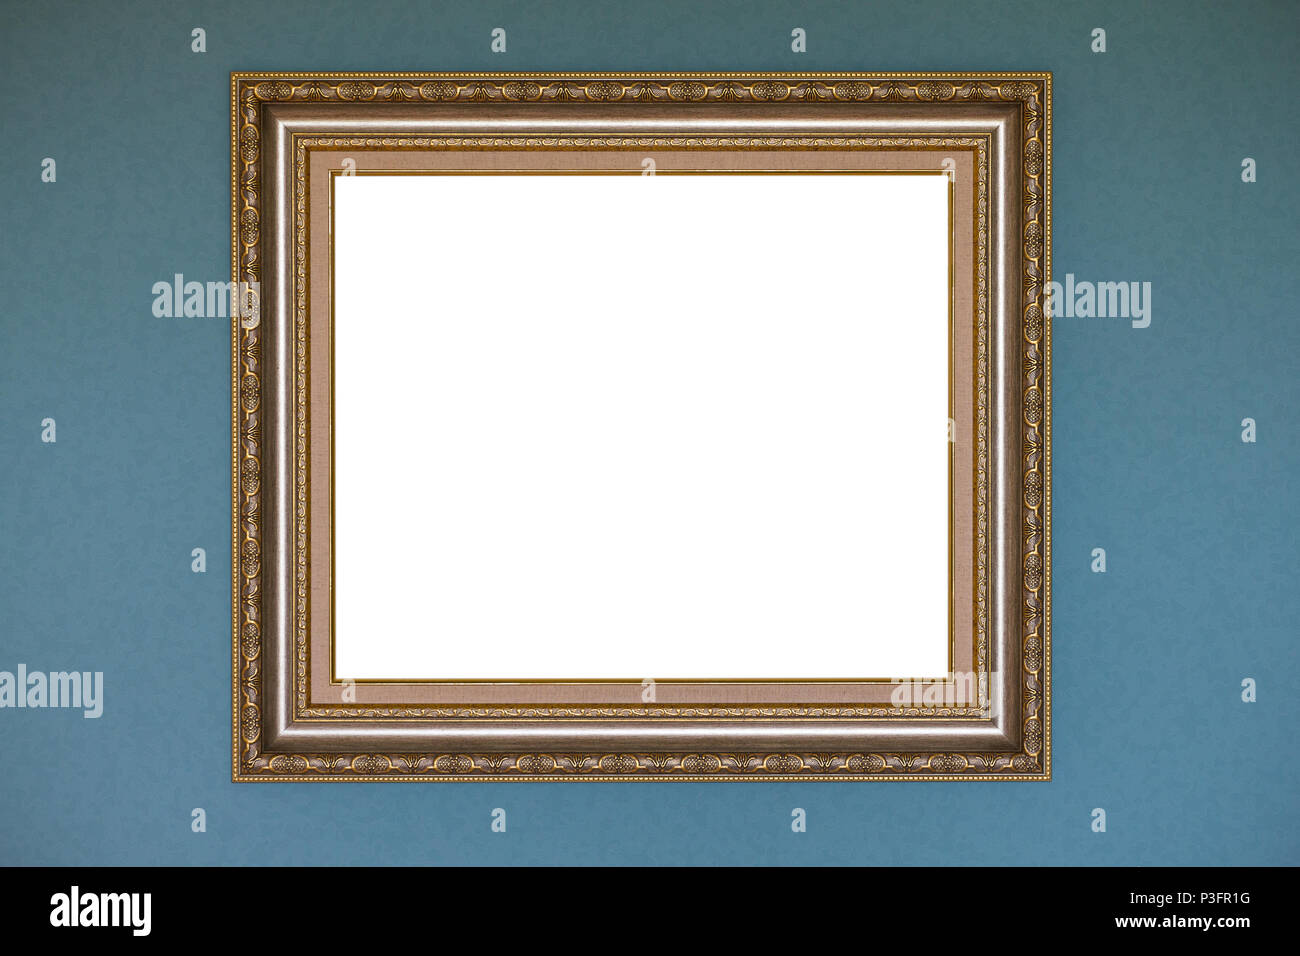 Empty Picture Frame Wallpaper Stock Photos & Empty Picture Frame ...